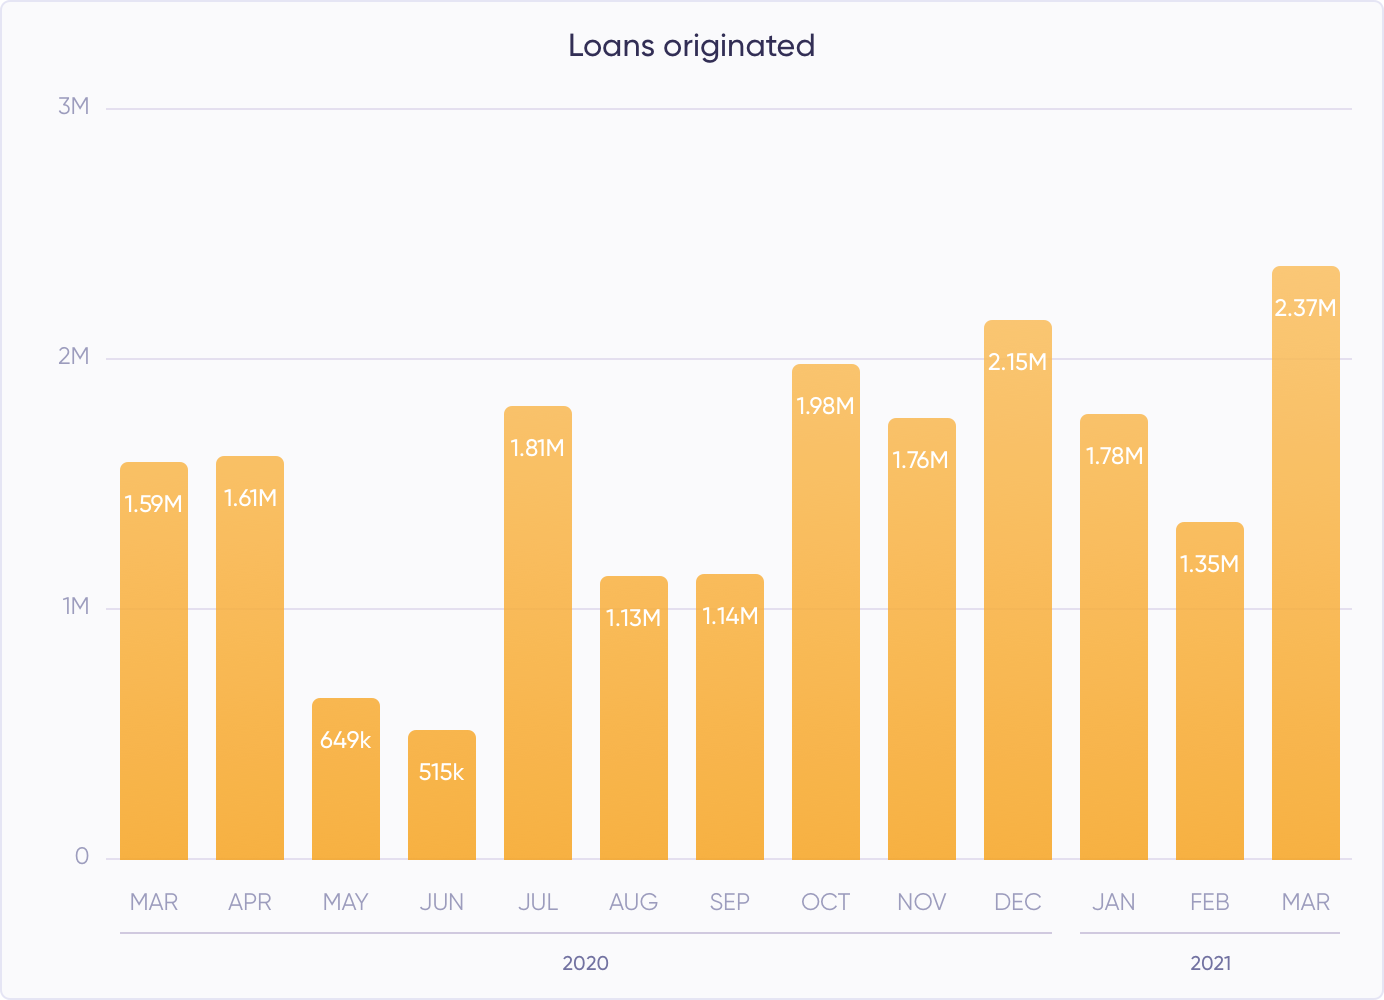 Loans originated in March